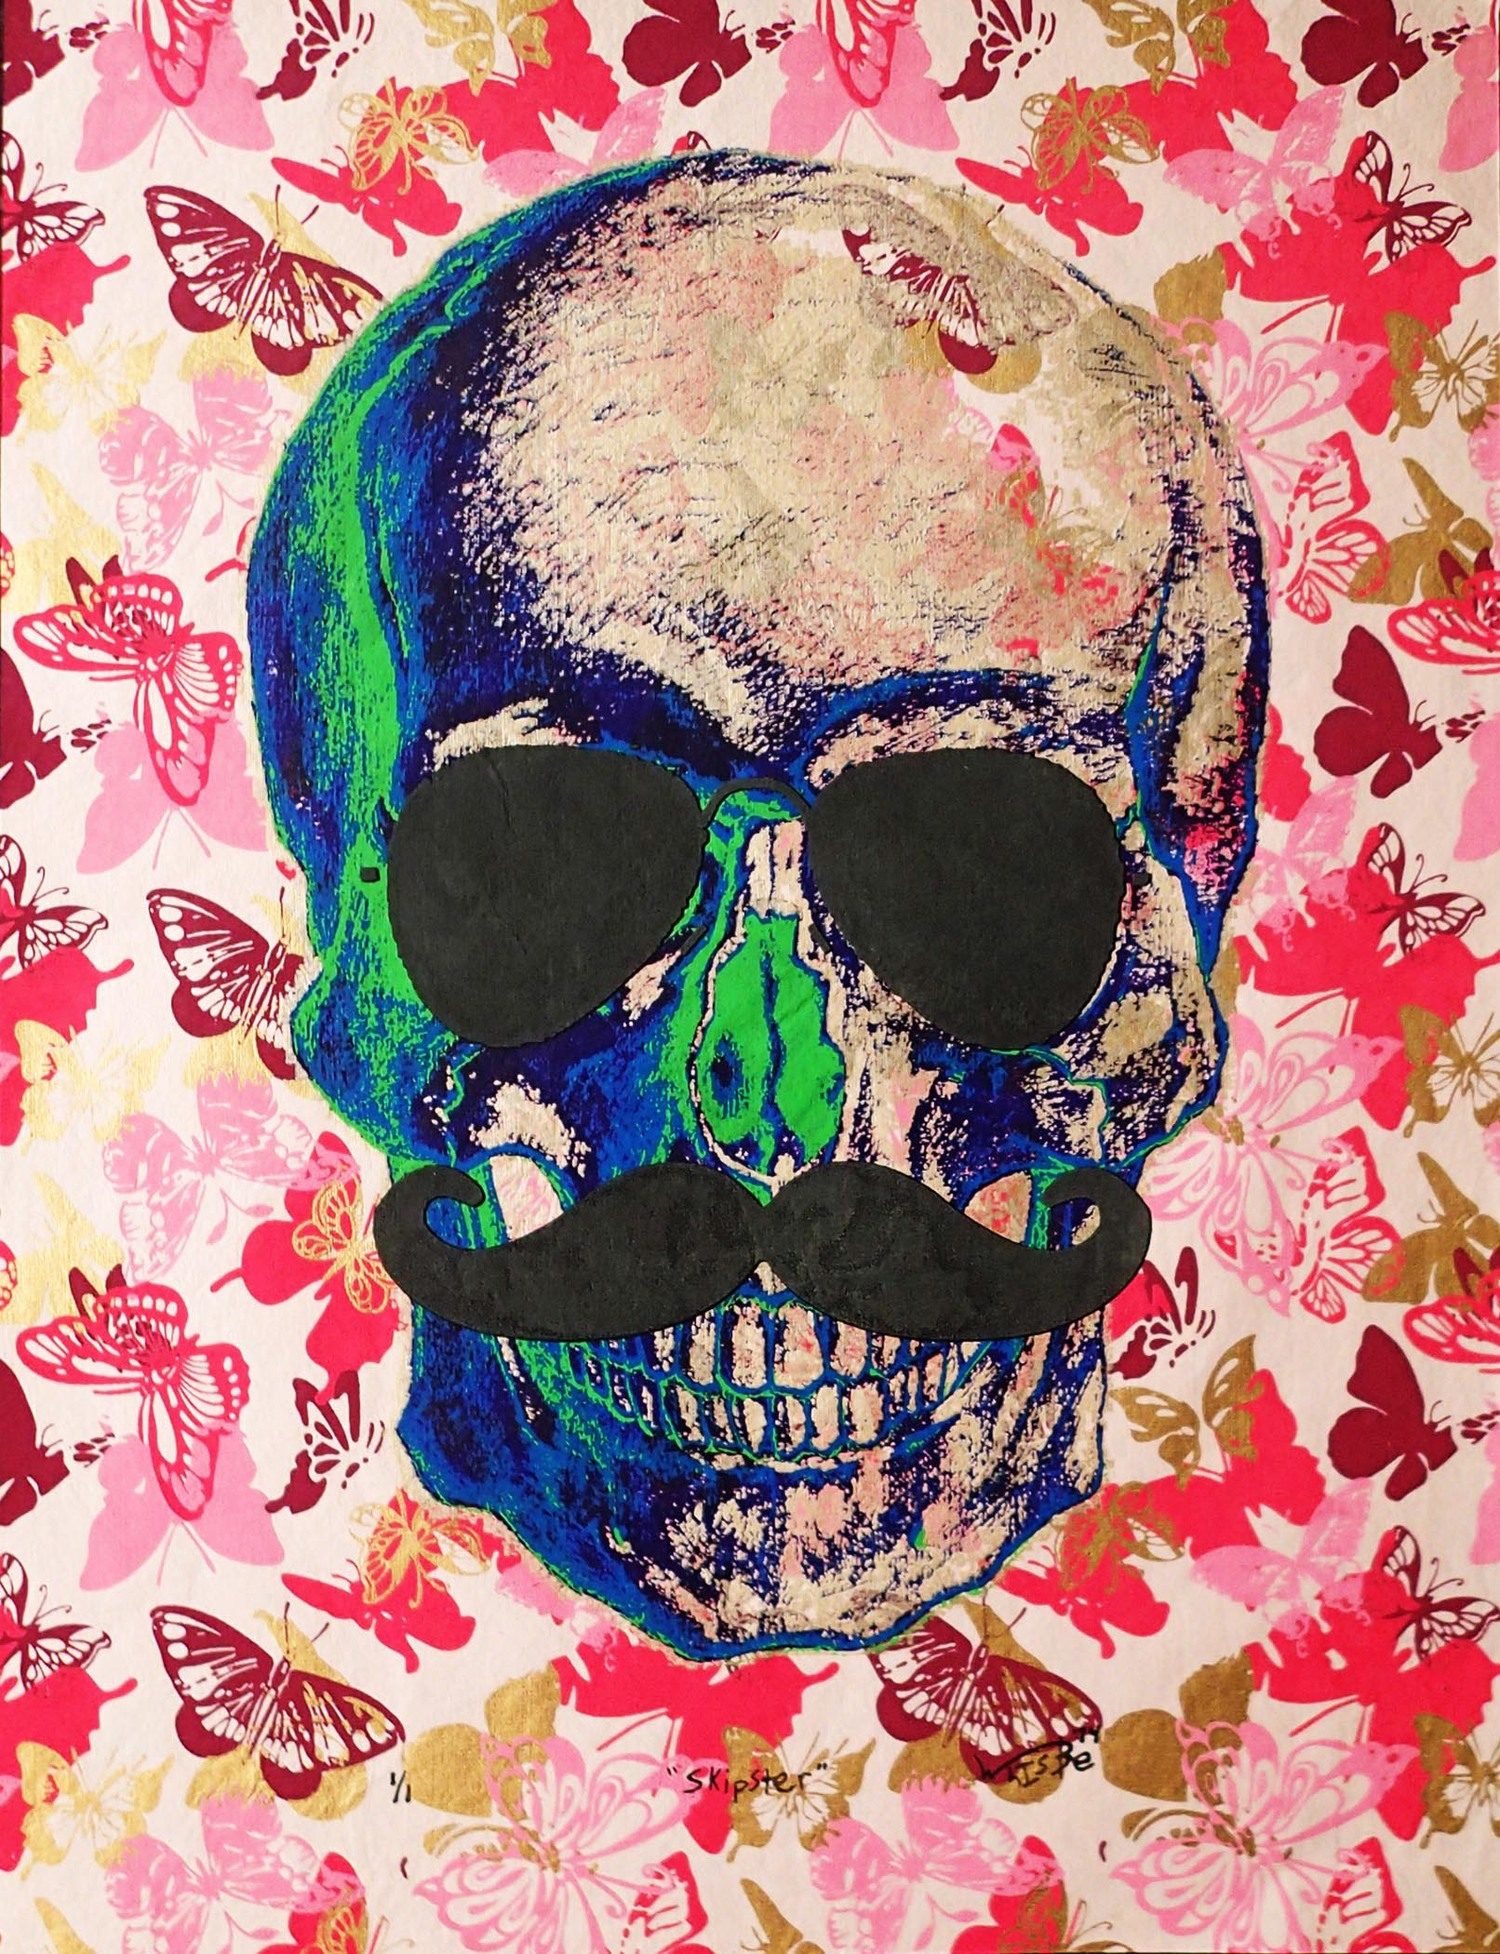 Skull with mustache and butterflies